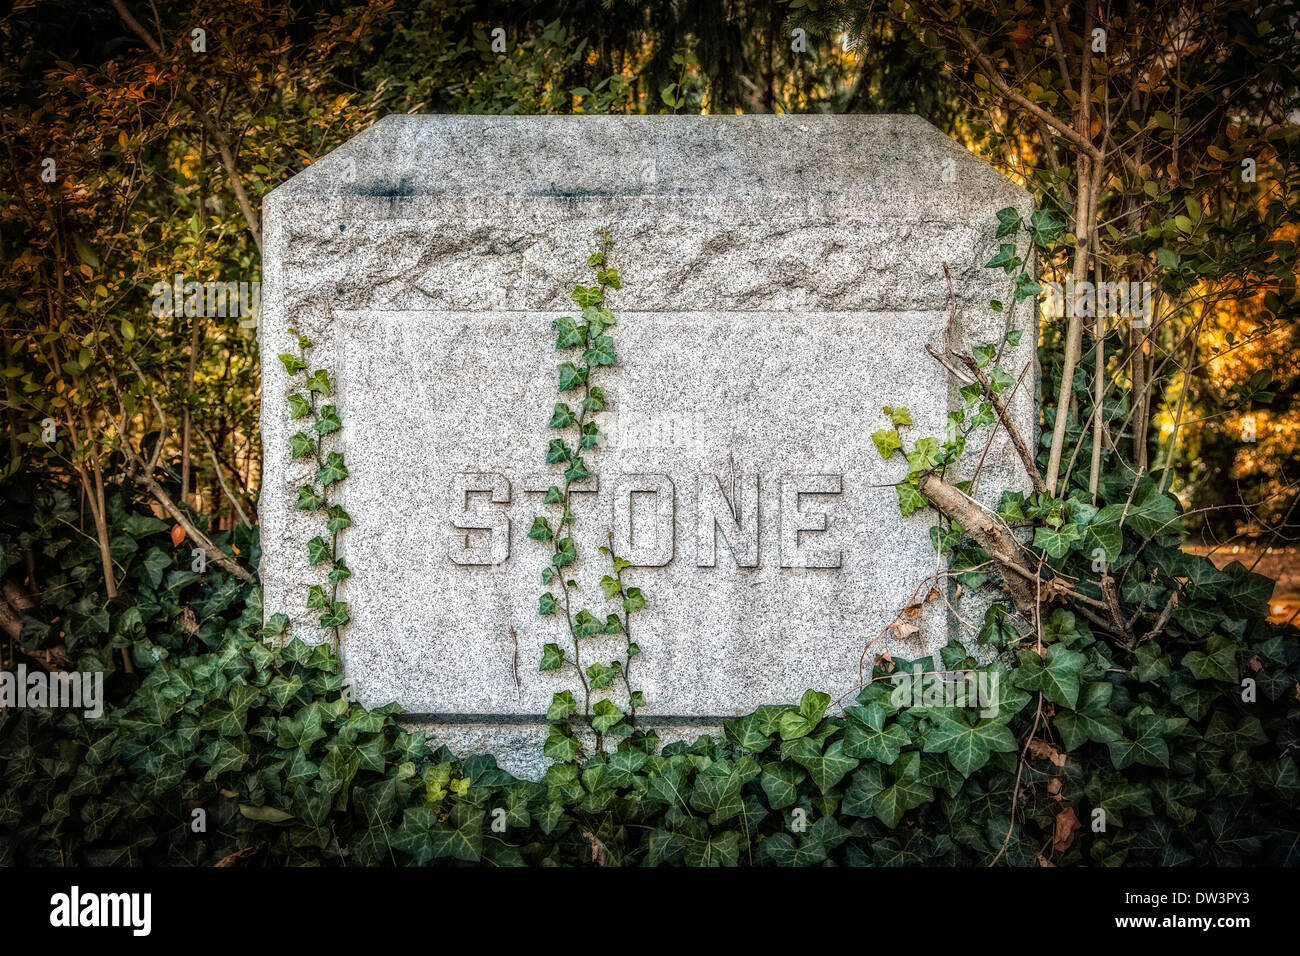 Tombstone at Machpelah cemetery with vine growing on it. - Stock Image